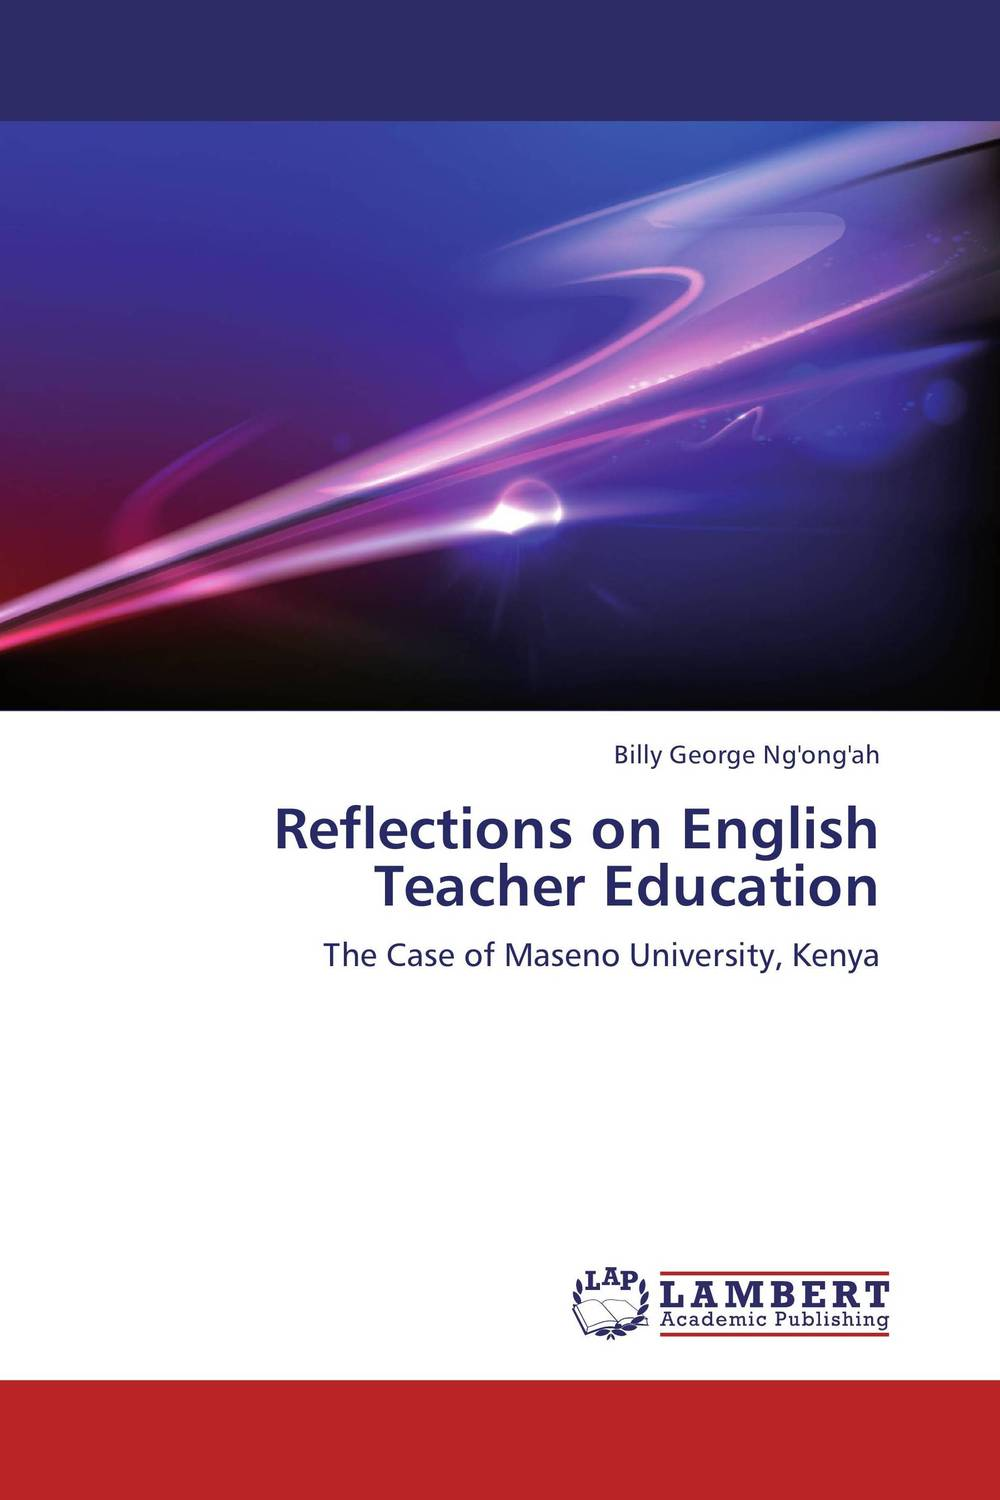 Reflections on English Teacher Education reflections on english teacher education